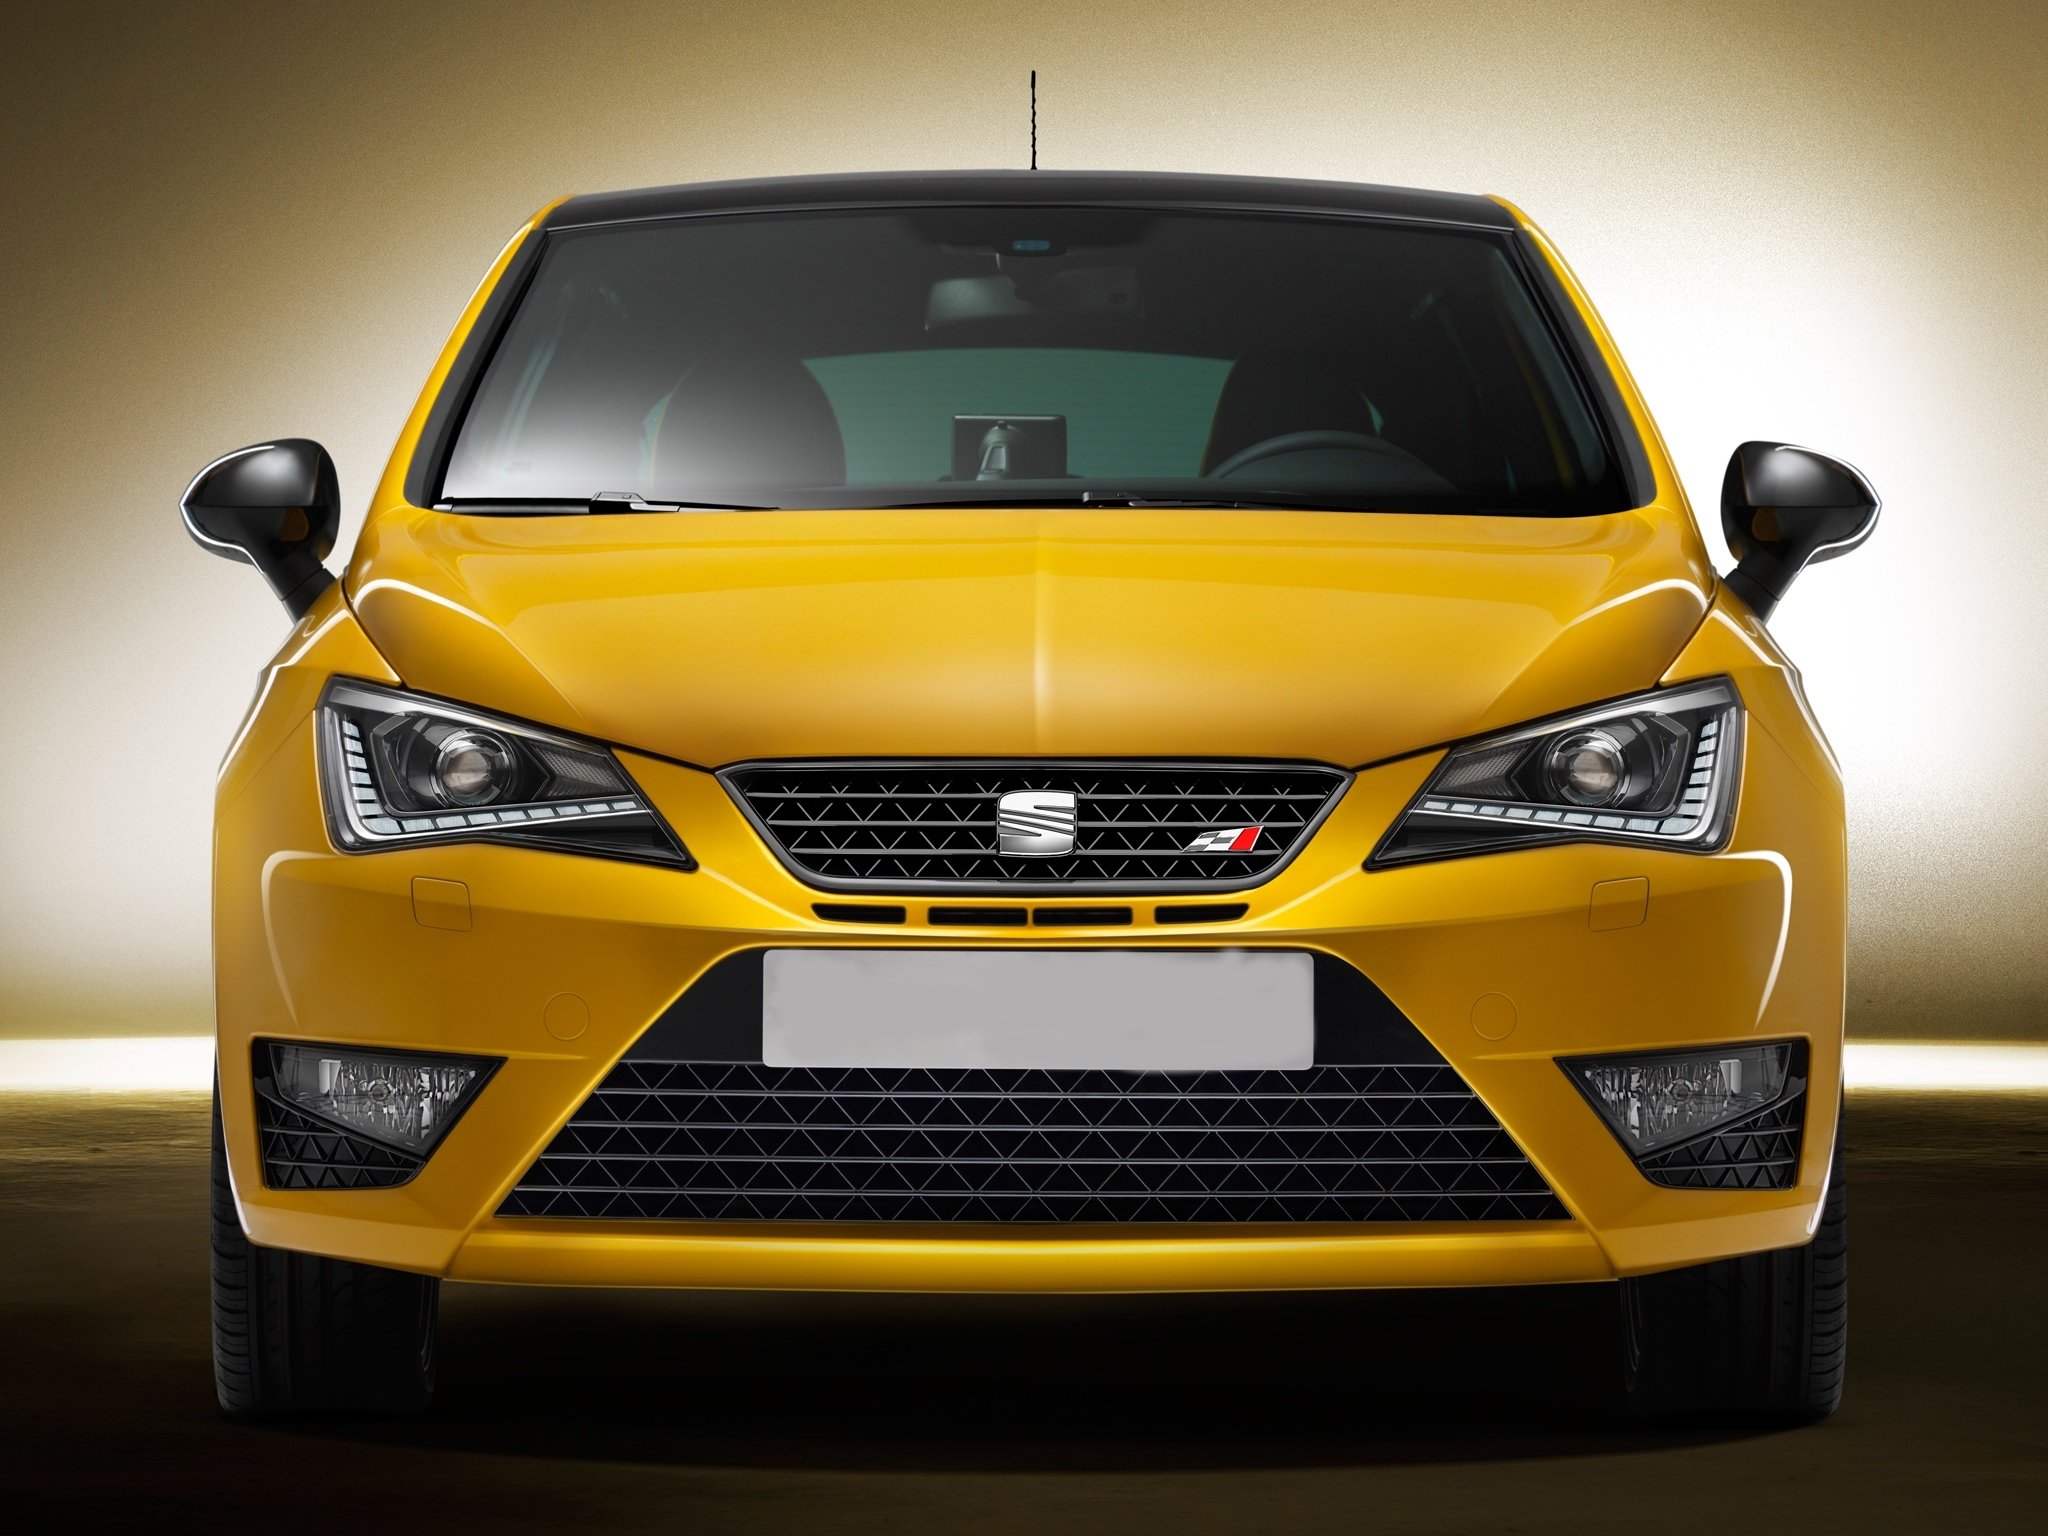 Car Lineup Wallpaper Seat Ibiza 5 Coming In 2016 Will Be Based On Mqb